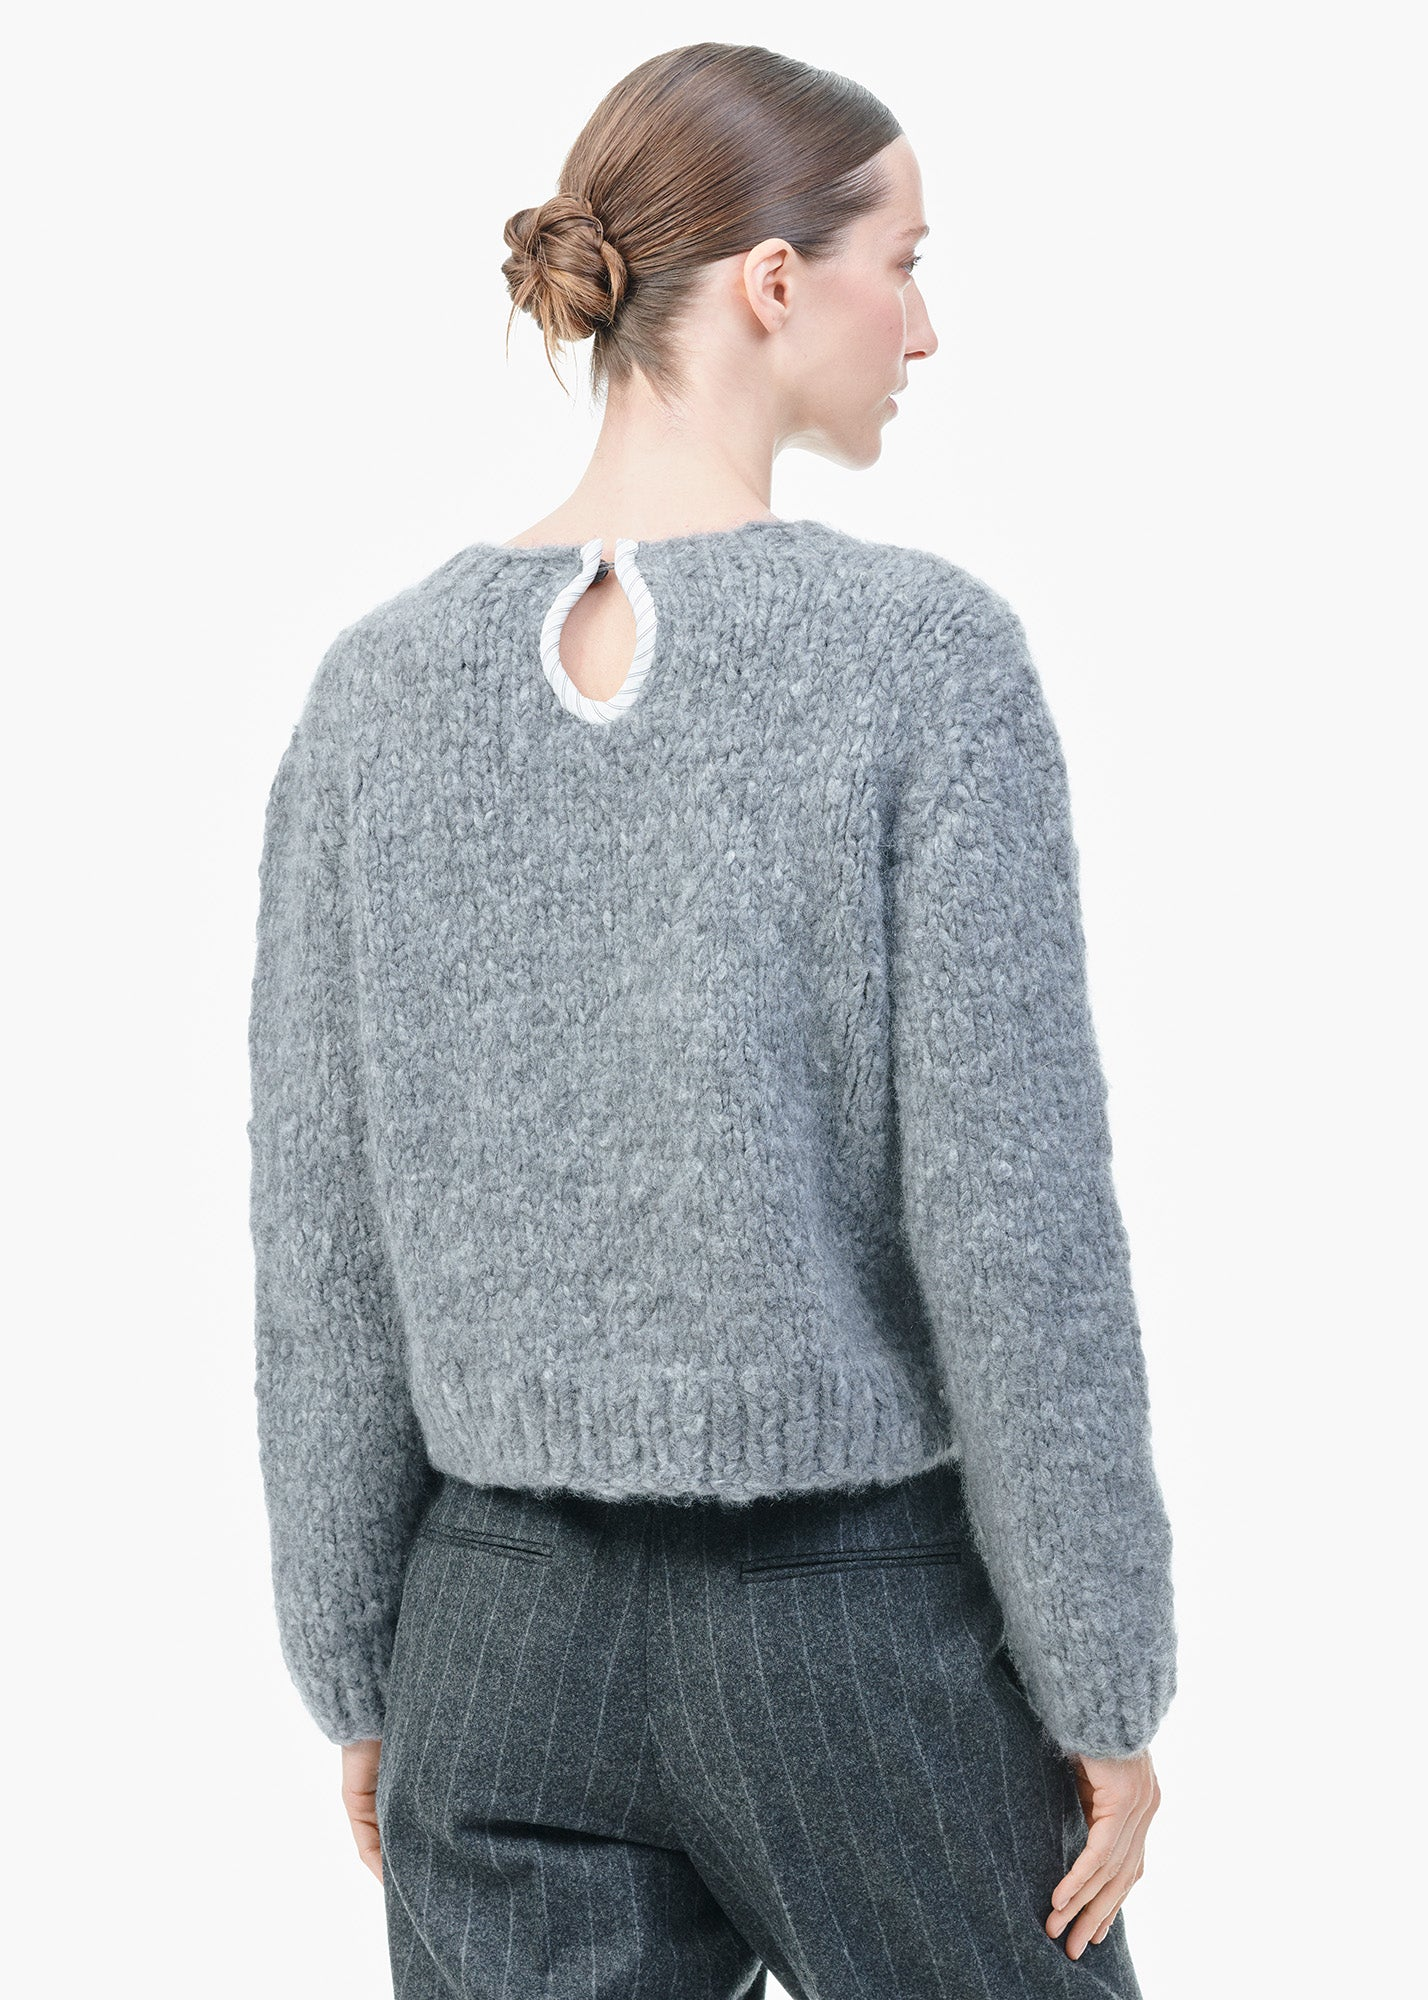 Handknit Cashmere Sweater Grey